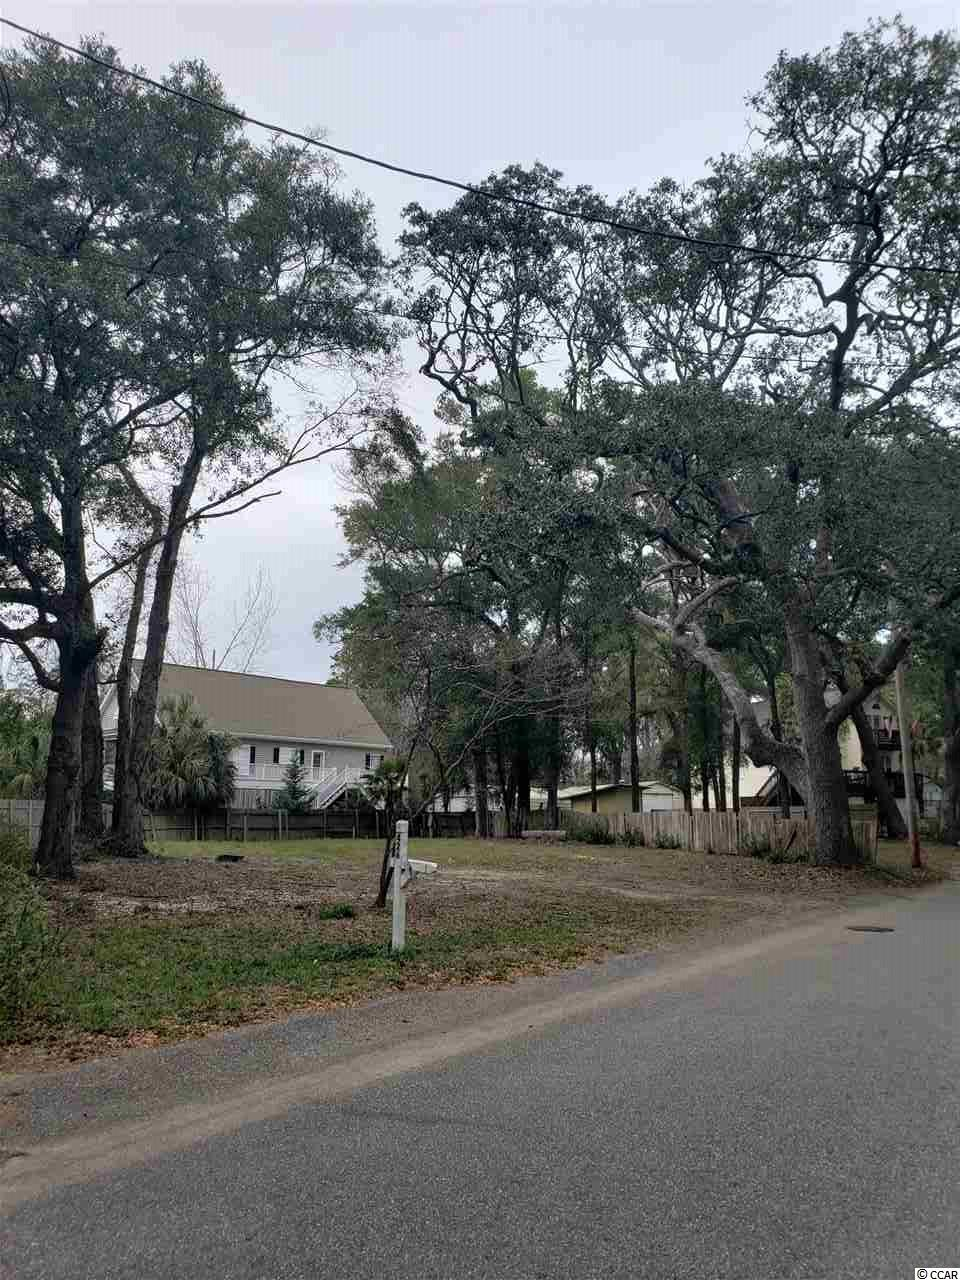 Beautiful vacant lot East of Hwy 17 Business in Murrells Inlet. Property is cleared and ready. There is a gorgeous mature Live Oak tree in the front right corner of the lot. Property is one of the highest elevations on Vereen Rd. Water and Sewer are on site. Per Grand Stand Water and Sewer, sewer line must be inspected prior to building permit being issued to confirm all is in working order. Owner is licensed SC Realtor and listing agent.